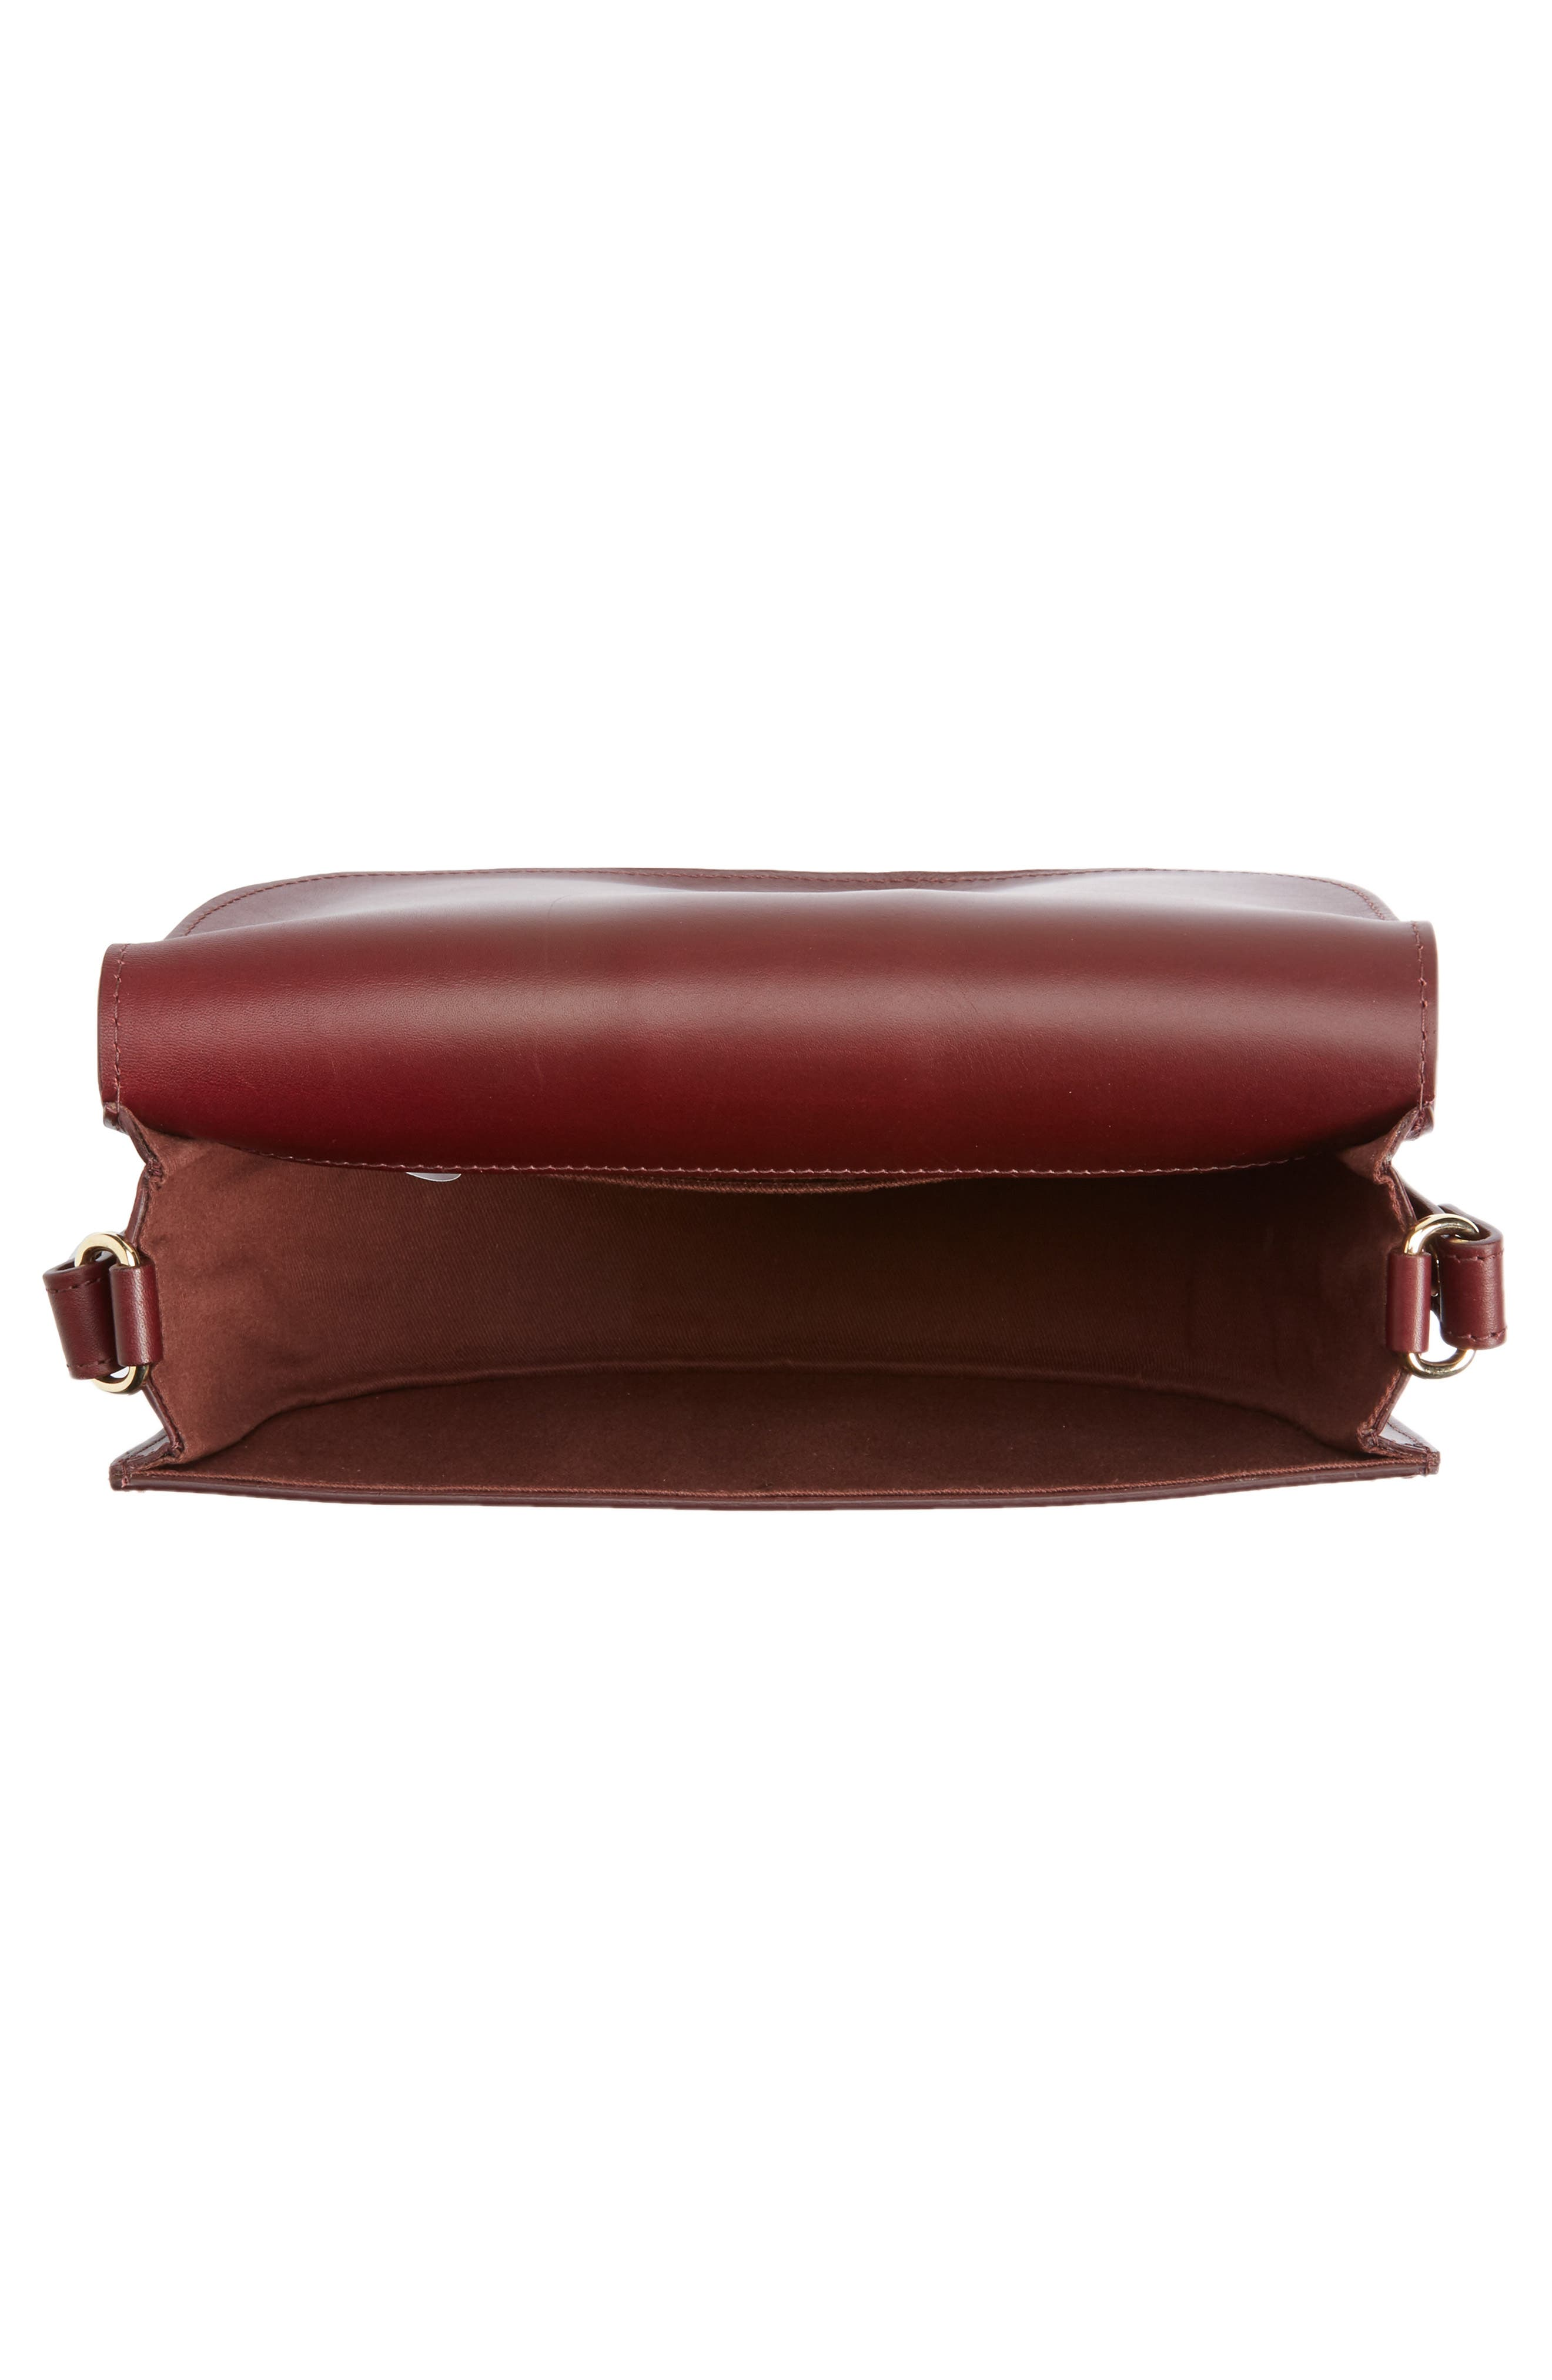 Soho Calfskin Leather Saddle Bag,                             Alternate thumbnail 4, color,                             600